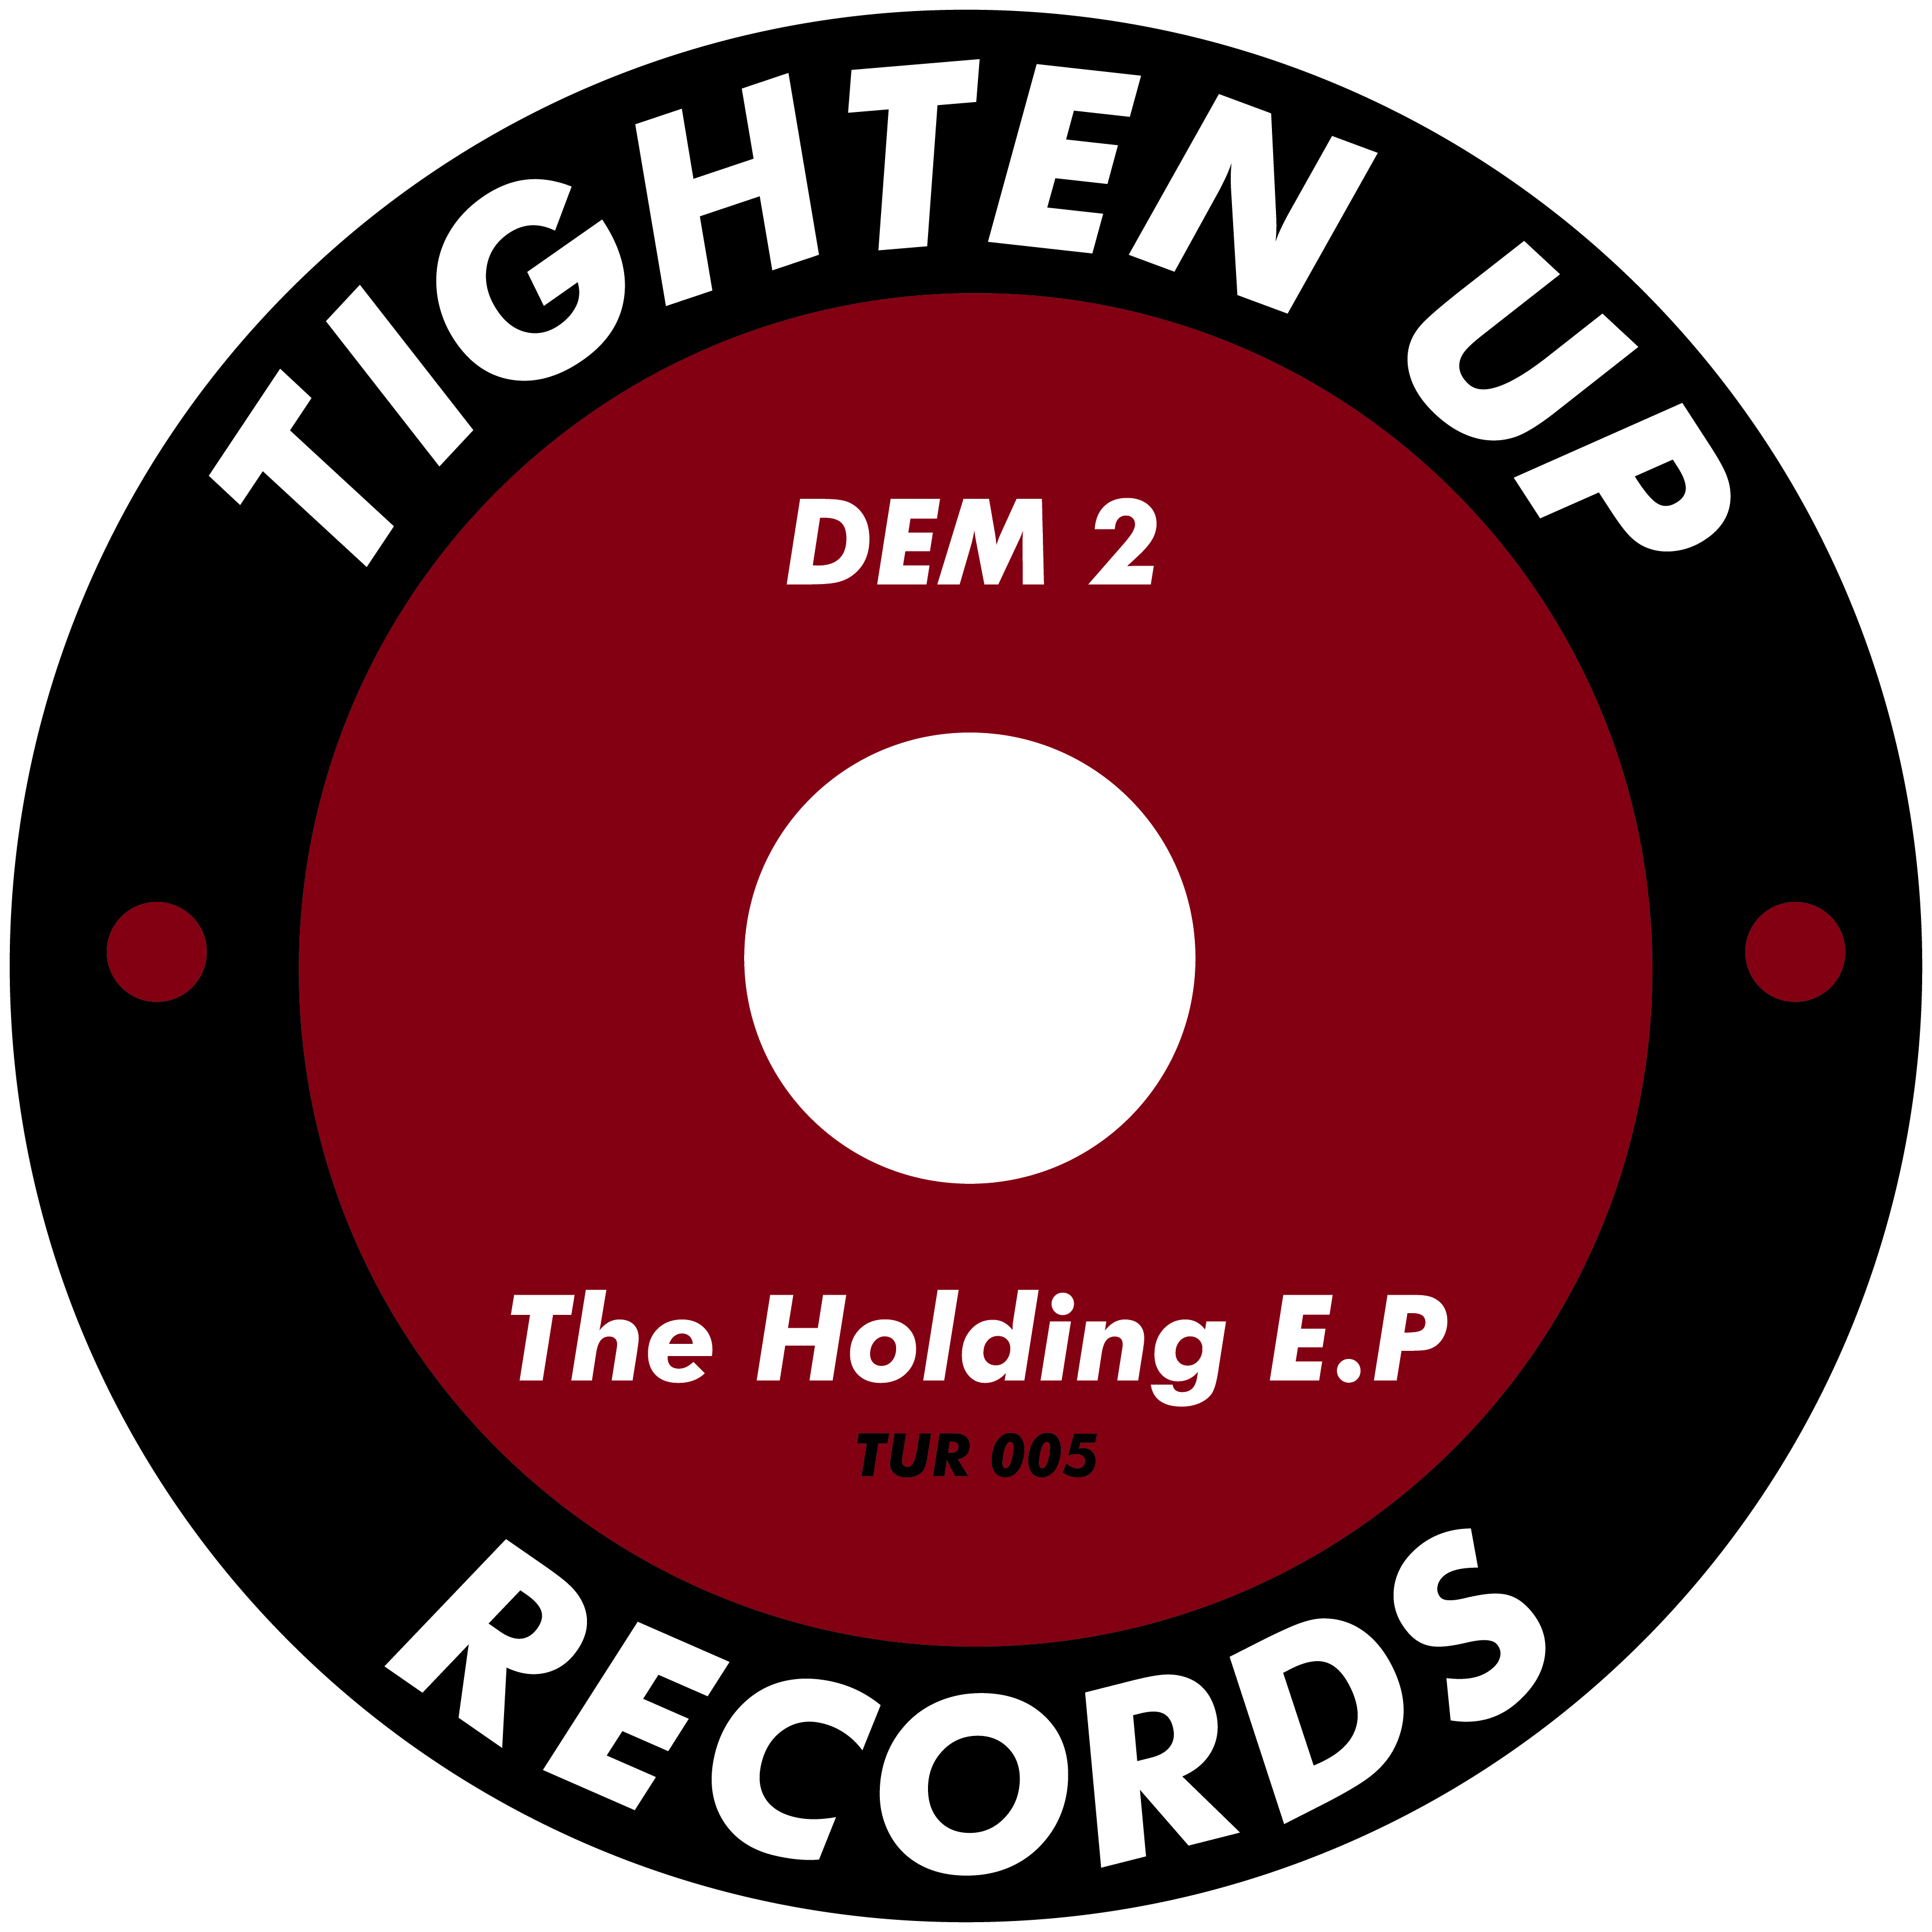 Bass house dubstep A1 bassline Tighten Up Records